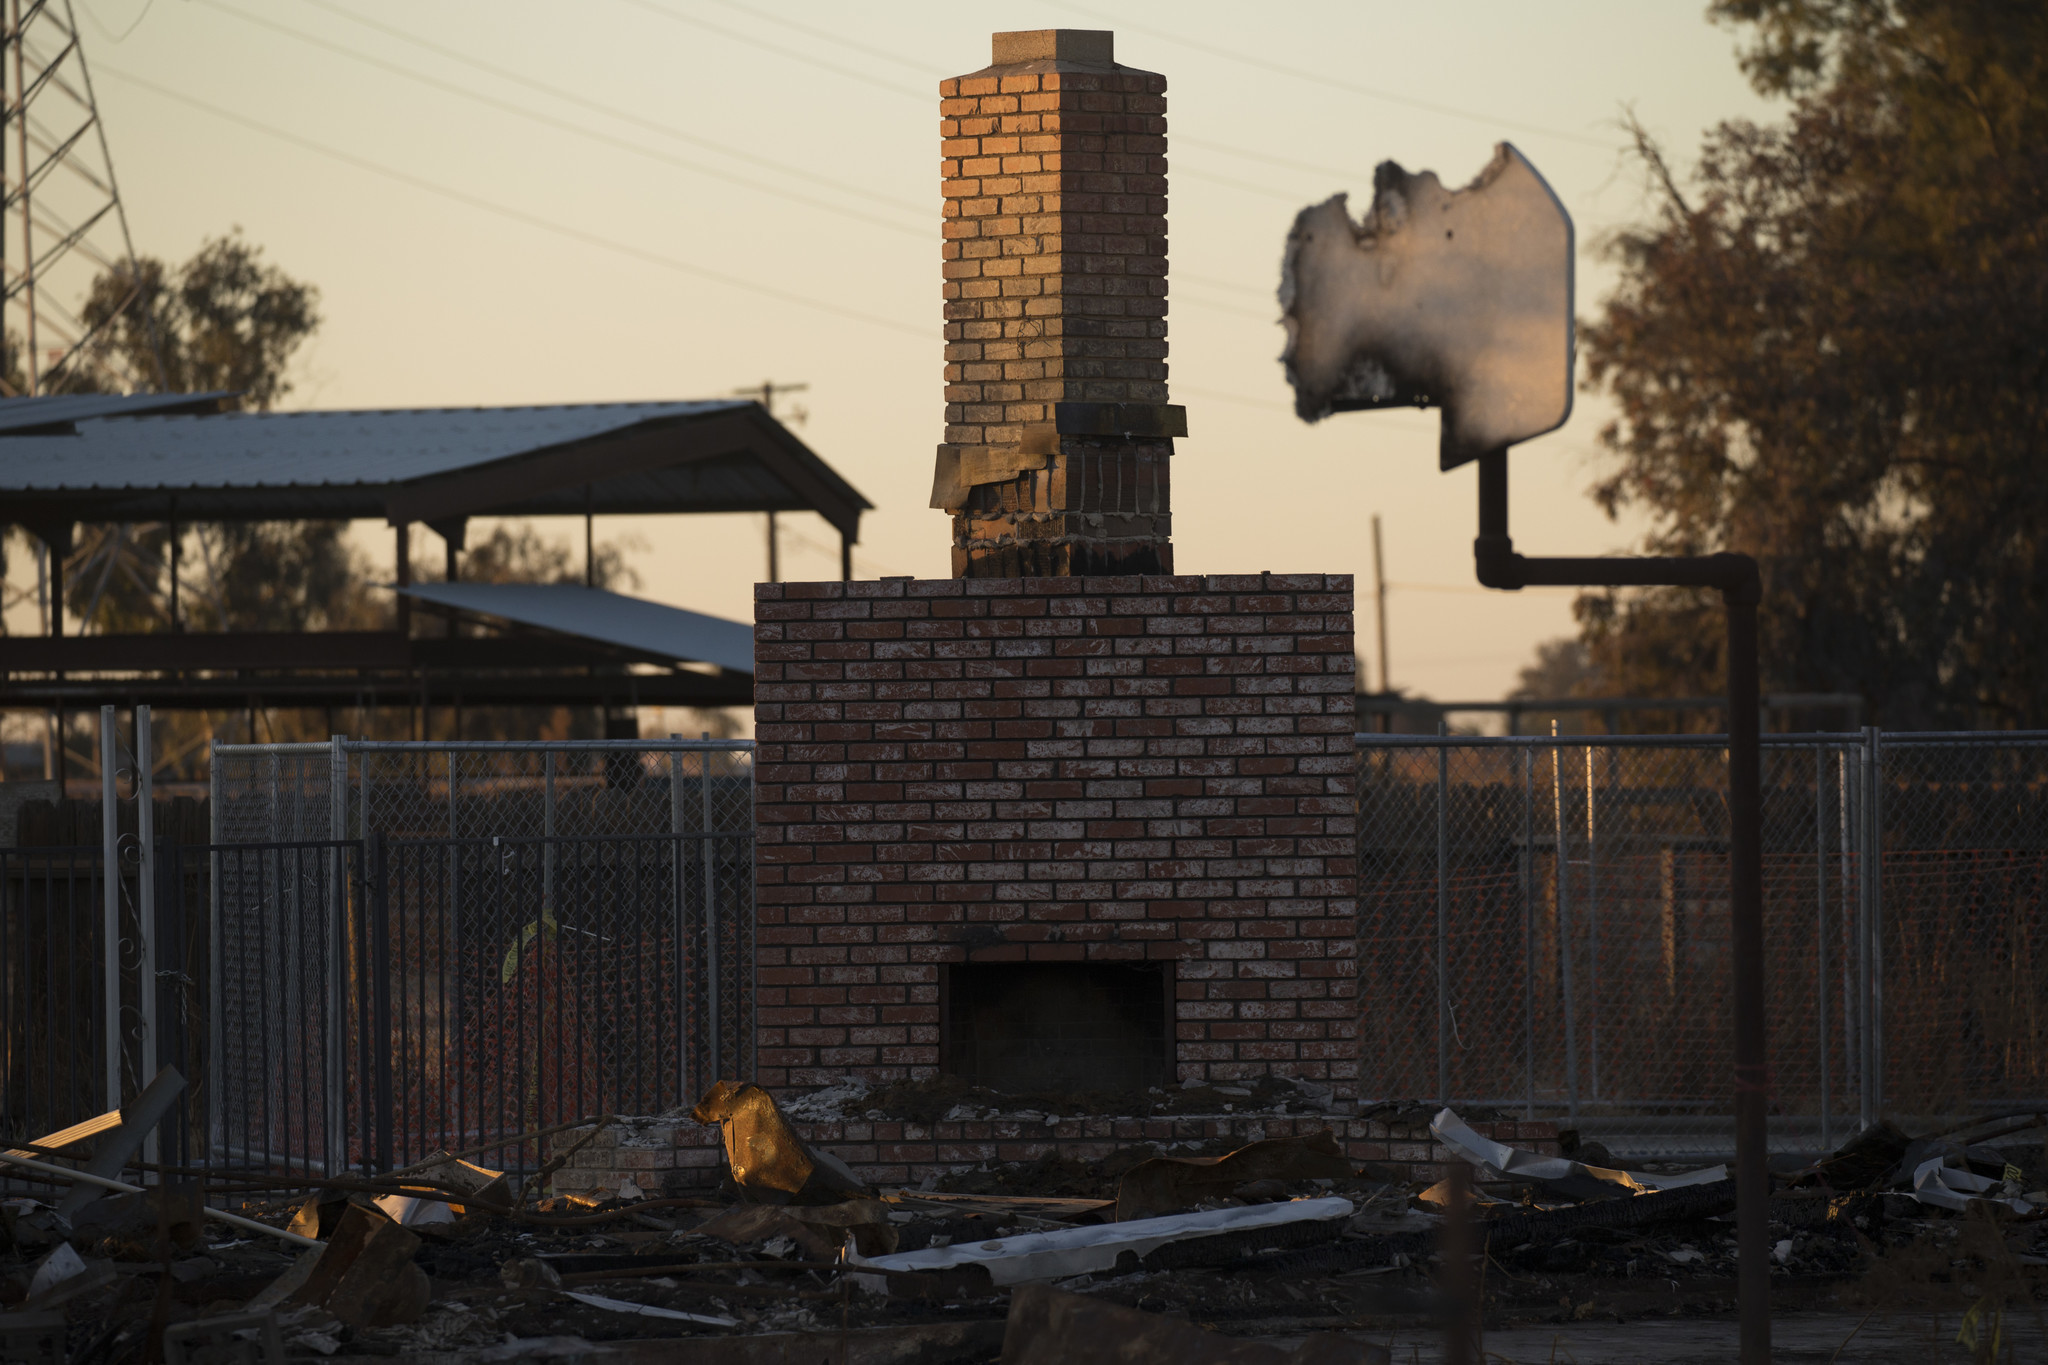 CORCORAN, CA - DECEMBER 20: The remnants of Charlene Hook's home, photographed on December 20, 2017